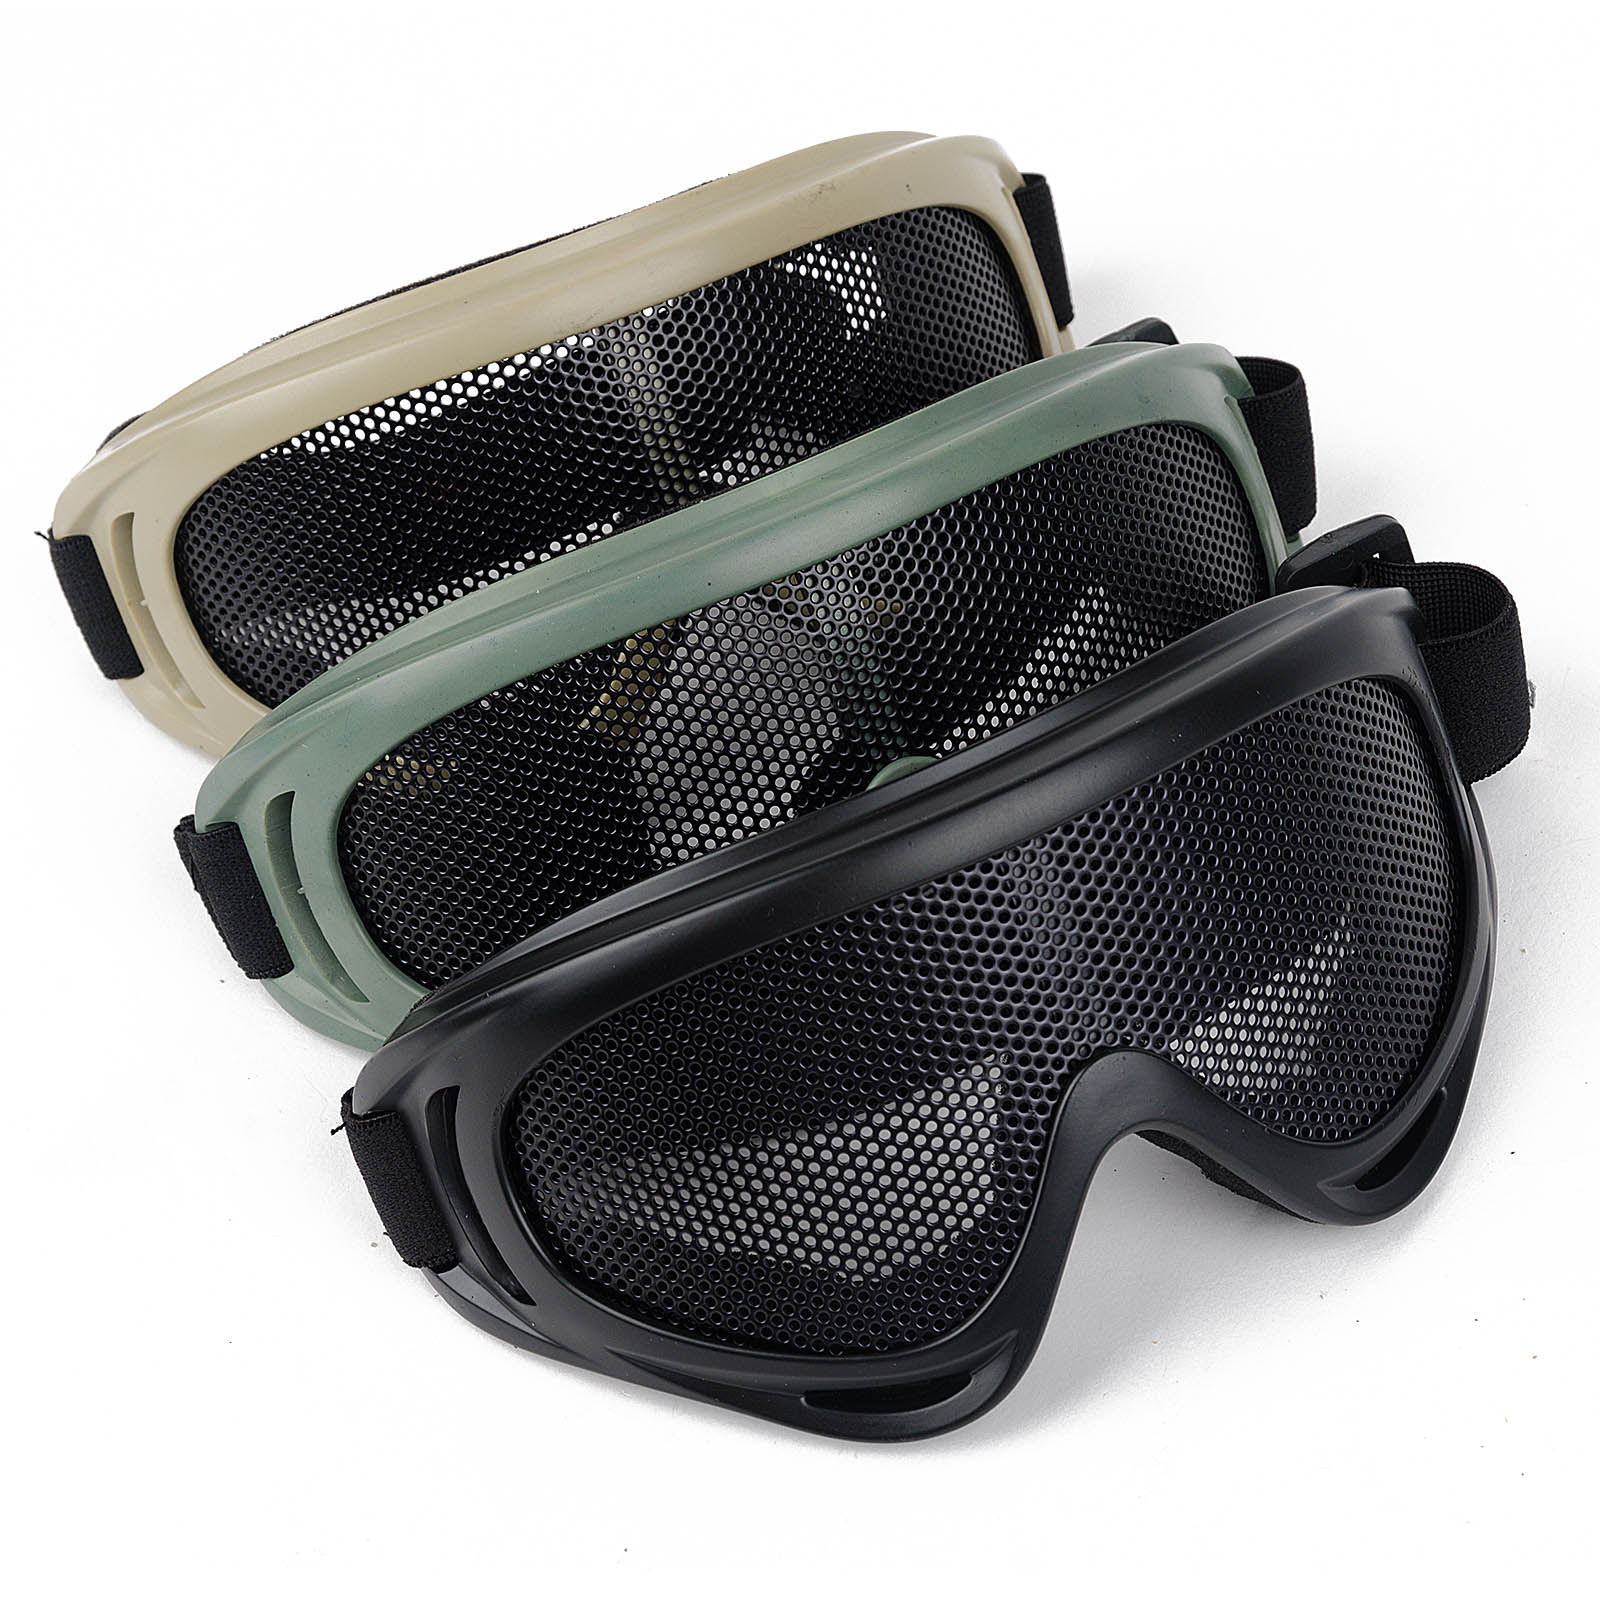 Outdoor Eye Protective Comfortable Airsoft Safety Tactical Eye Protection Metal Mesh Glasses Goggle 3Color